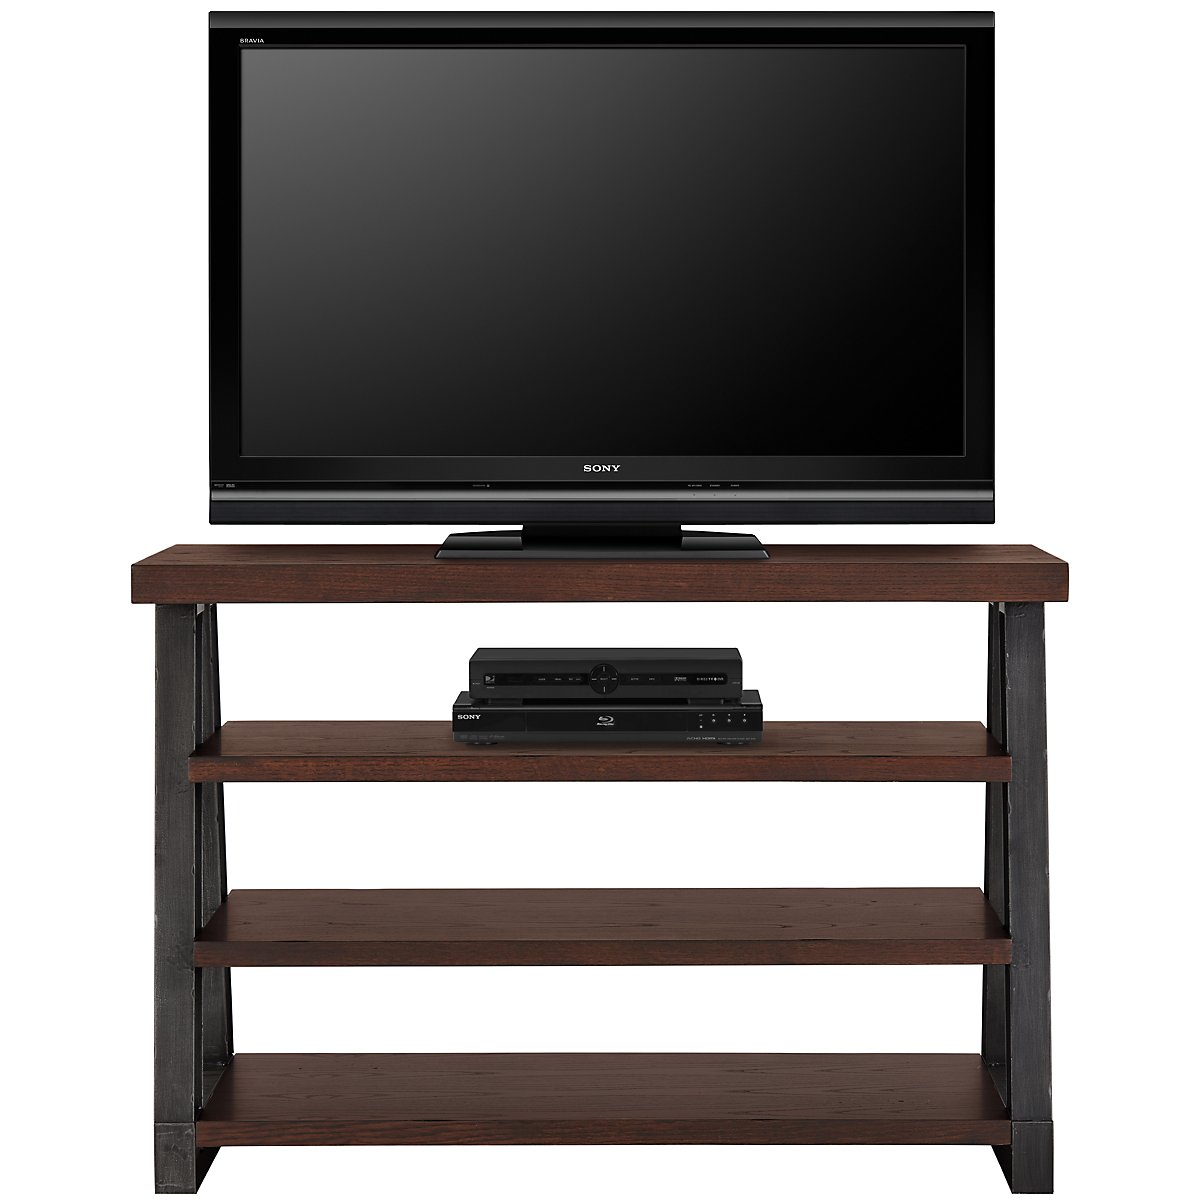 dakota dark tone 44 tv stand. Black Bedroom Furniture Sets. Home Design Ideas